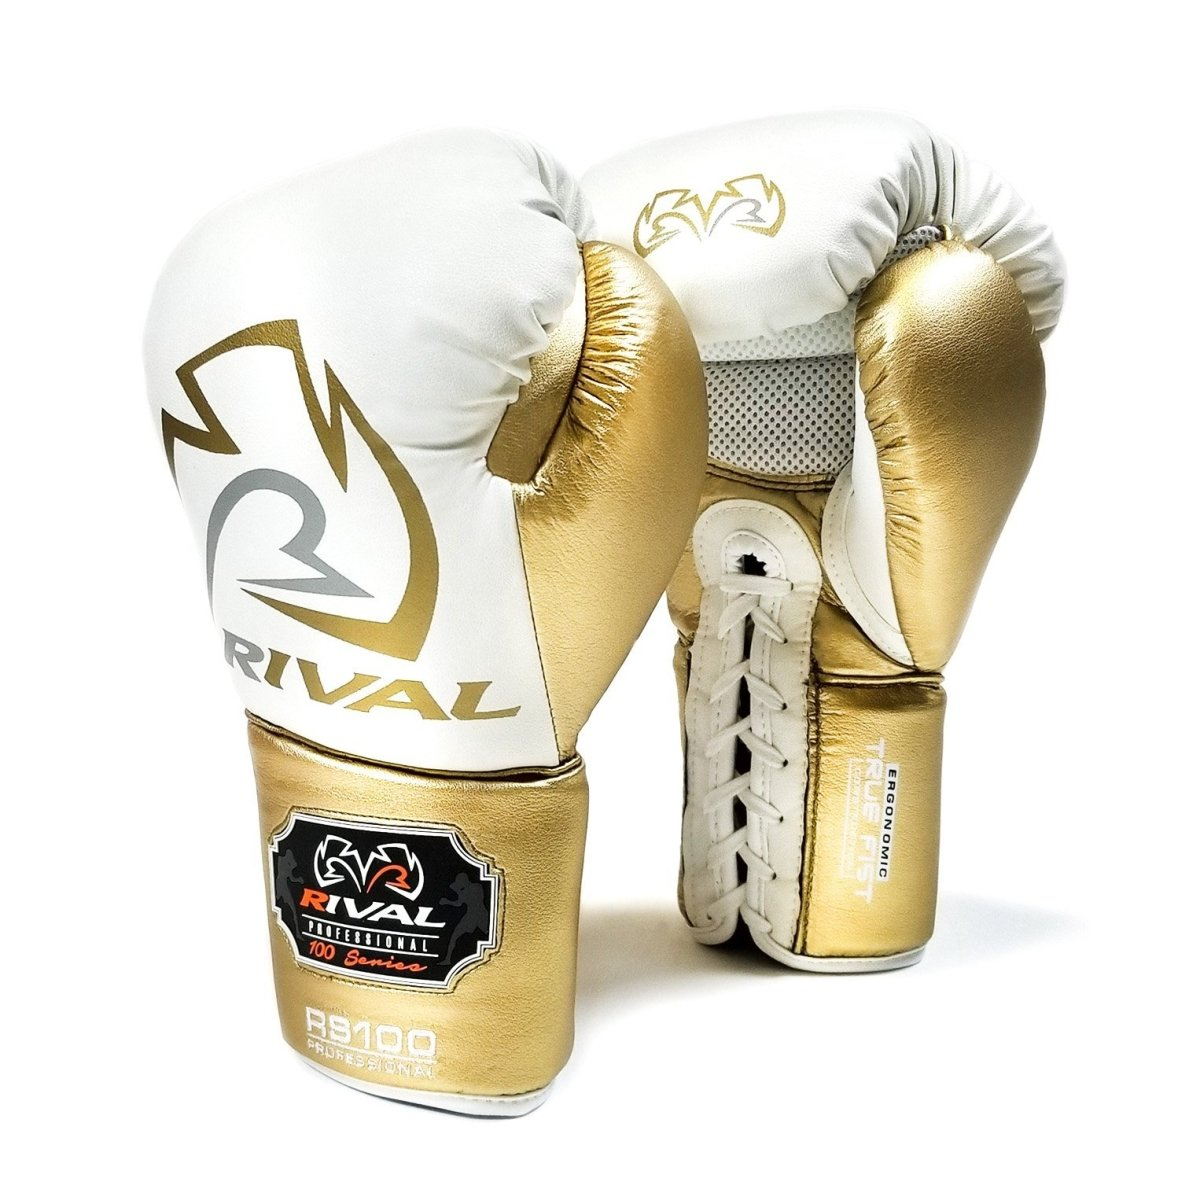 RIVAL GLOVES LACE RS100 LIMITED EDITION WHITE/GOLD - MSM FIGHT SHOPRIVAL BOXING